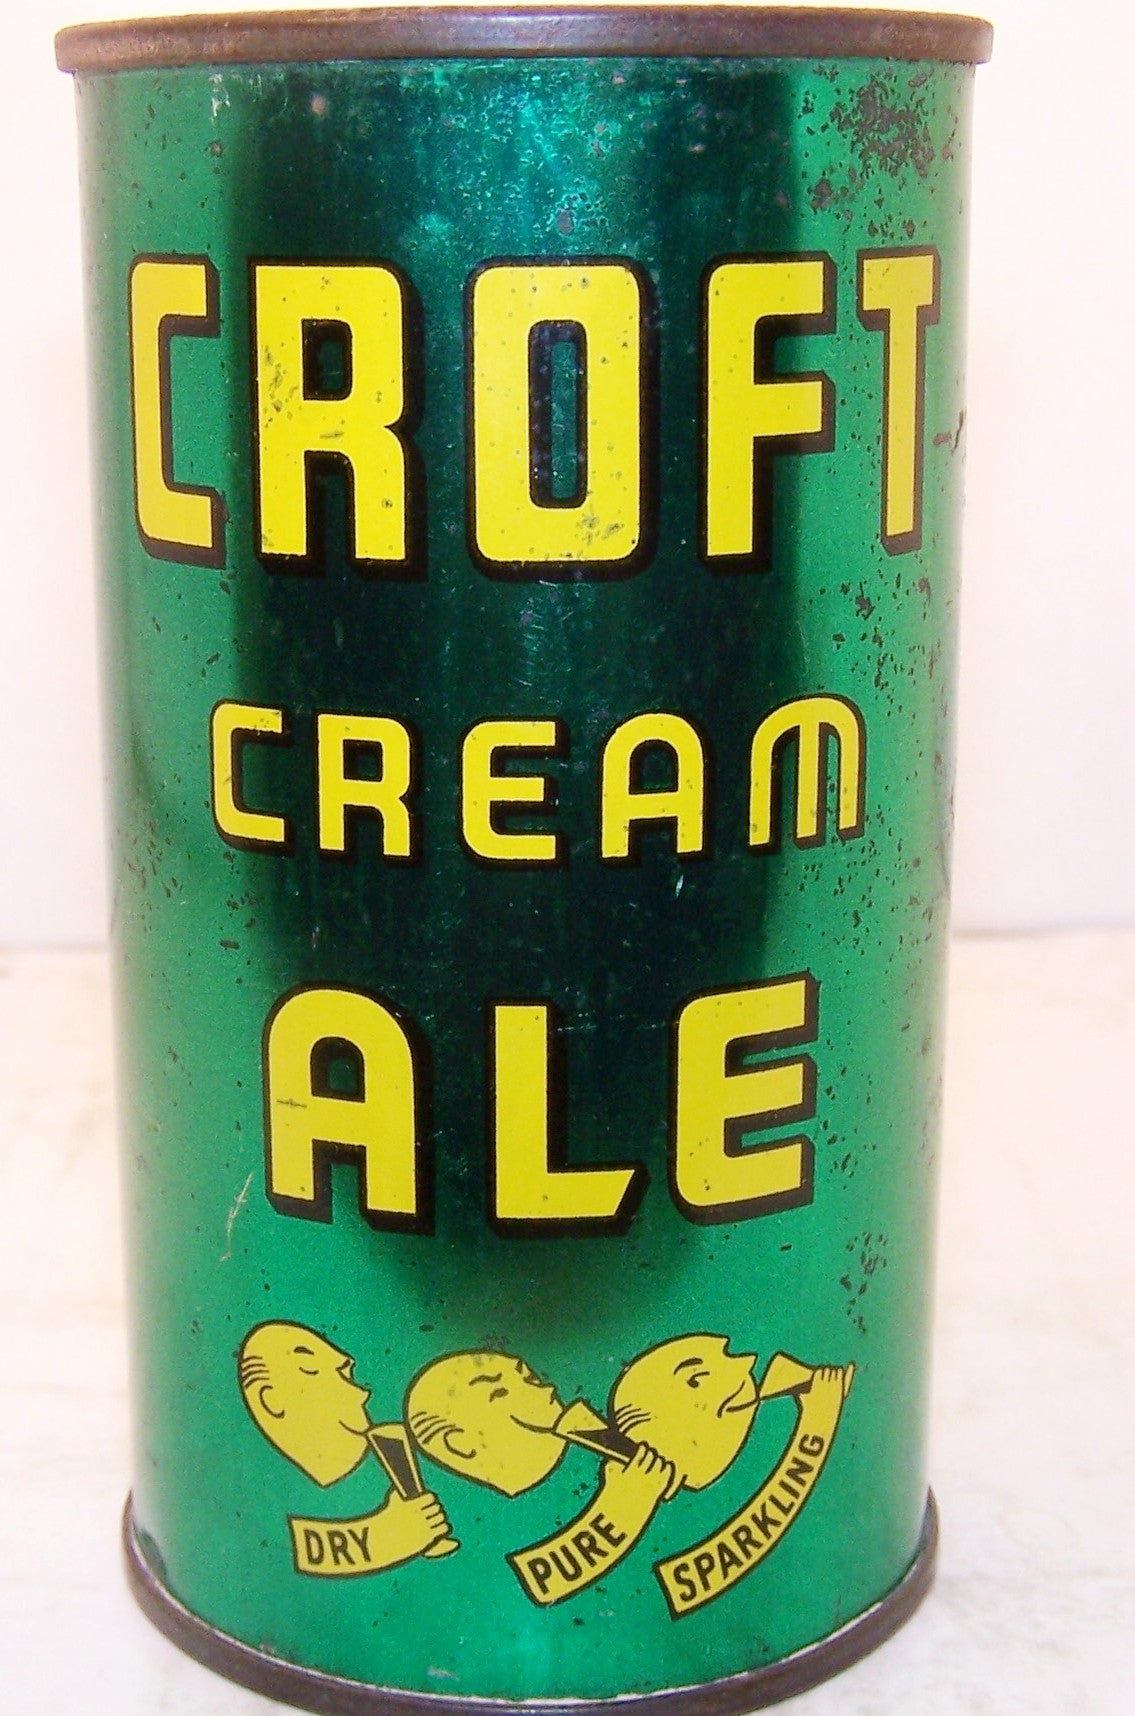 Croft Cream Ale, USBC 52-22 six products, Grade 1- sold on 04/23/17